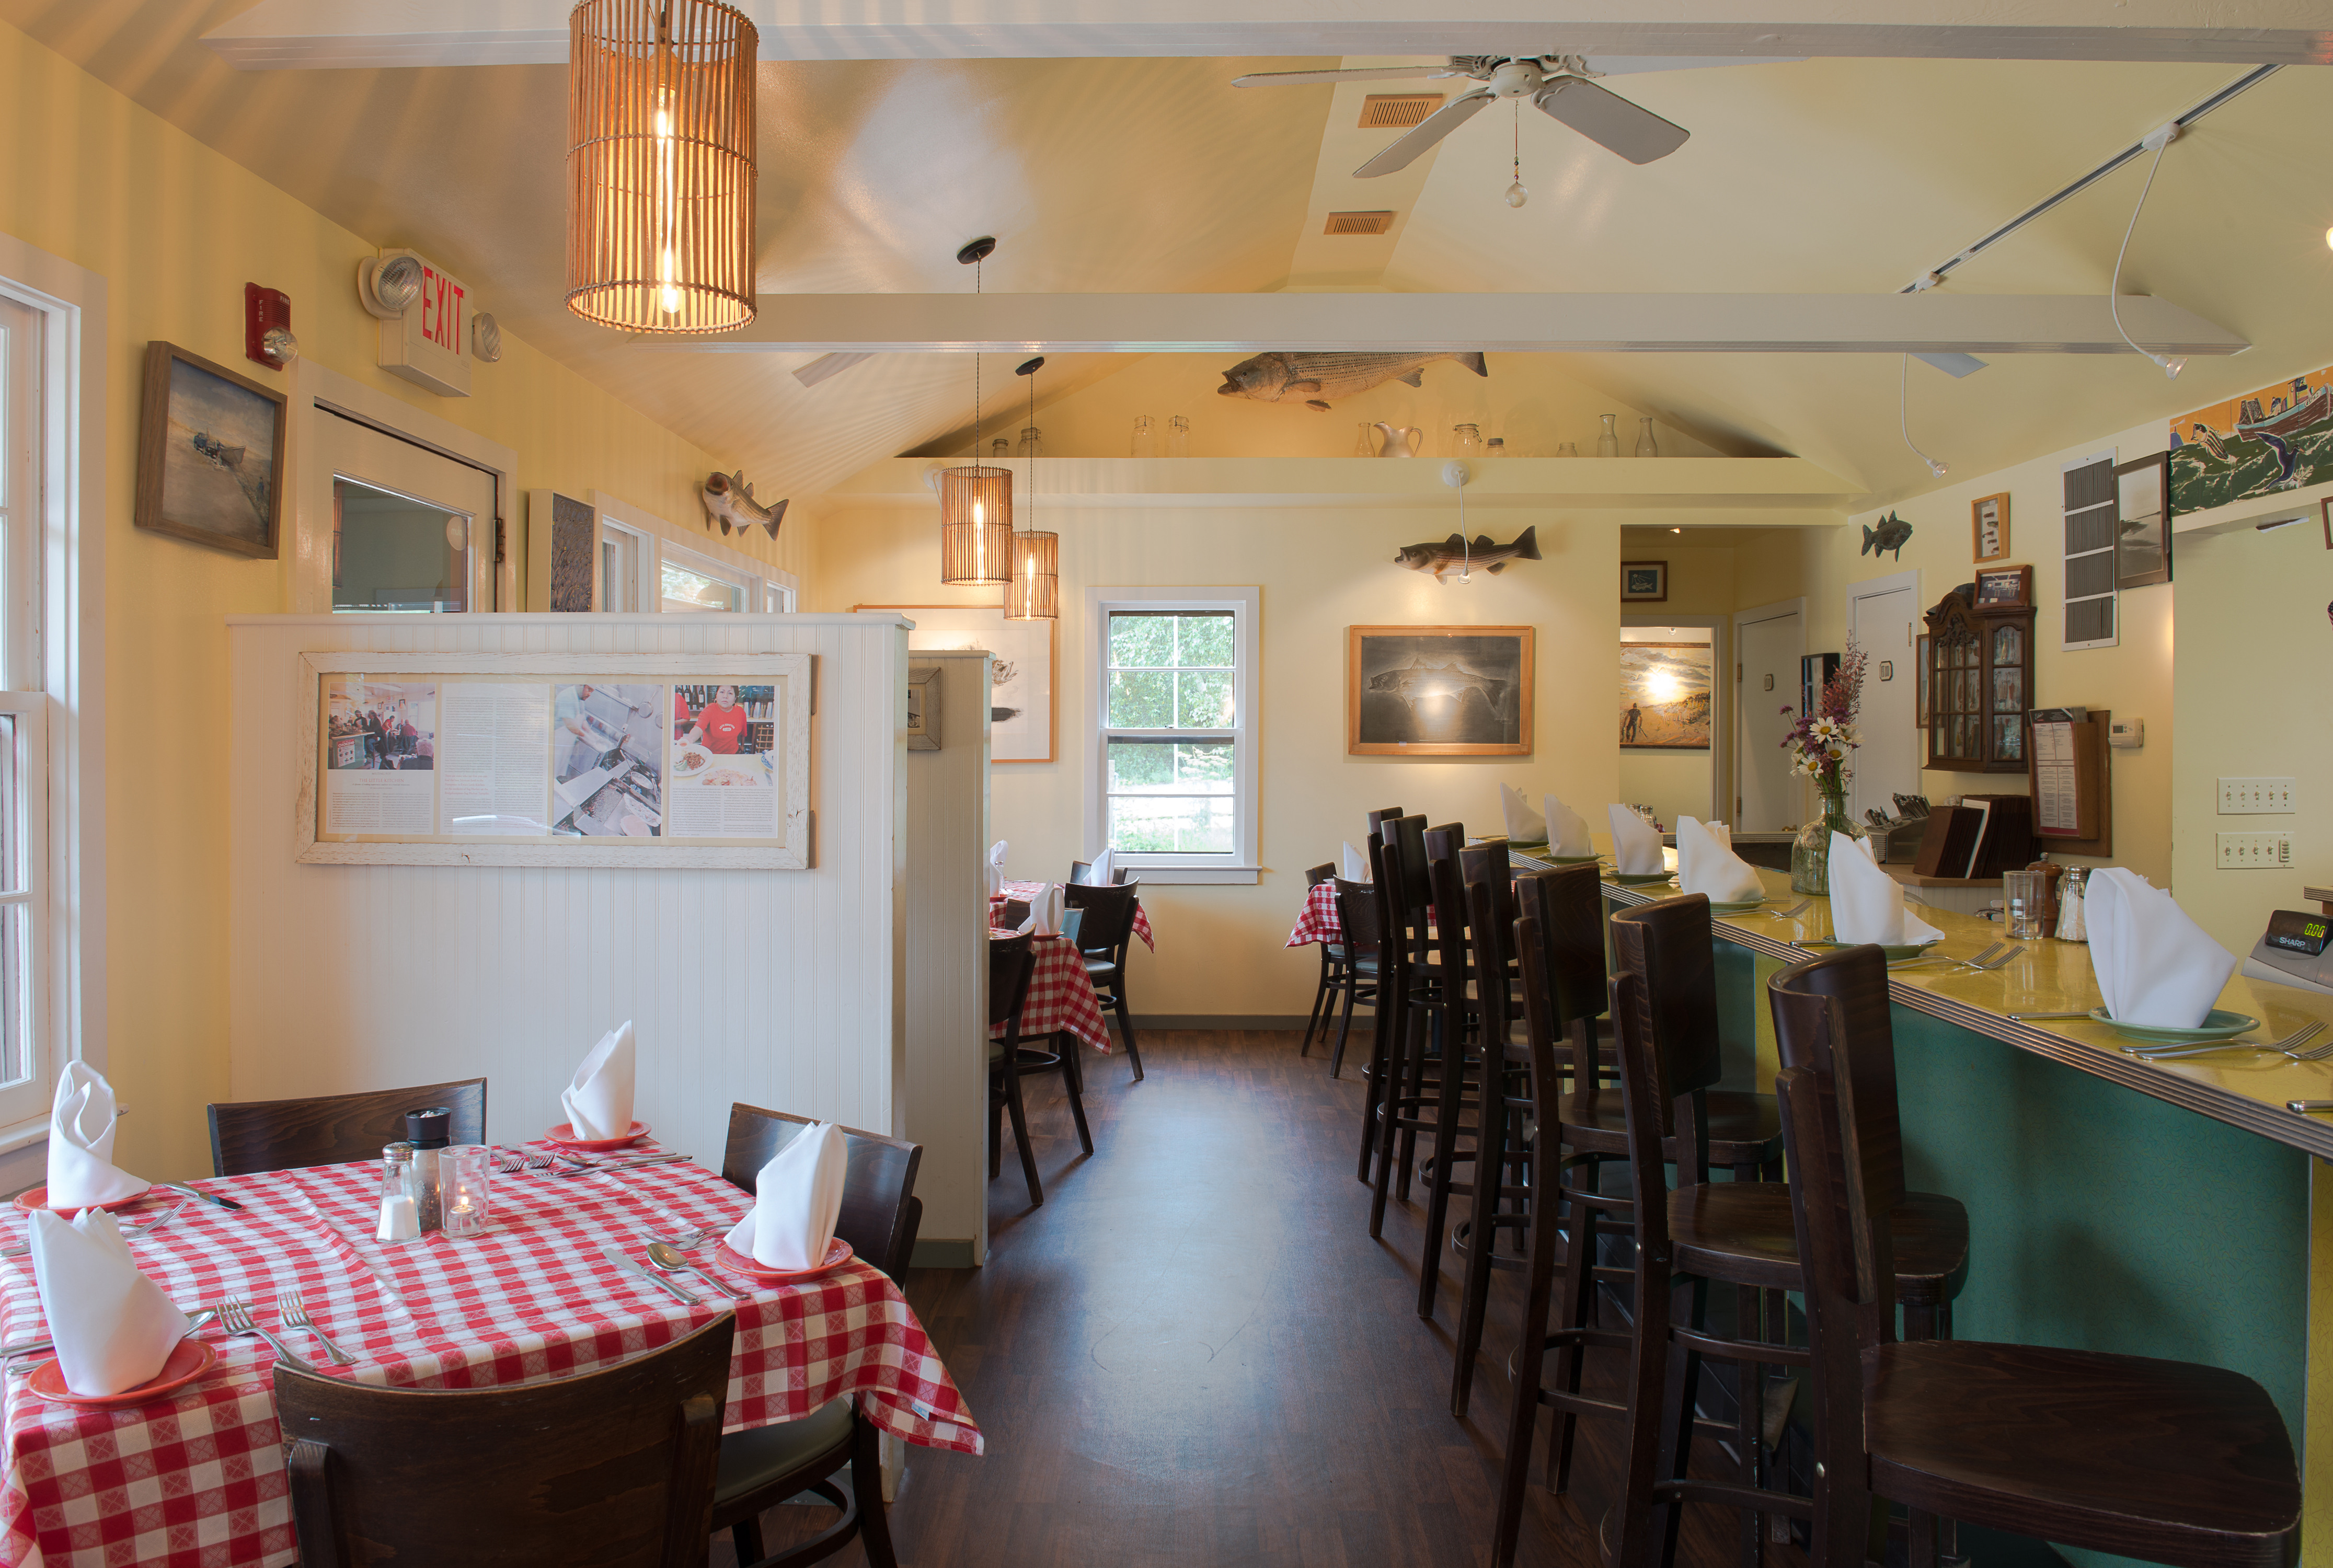 The Best Restaurants In The Hamptons New York The